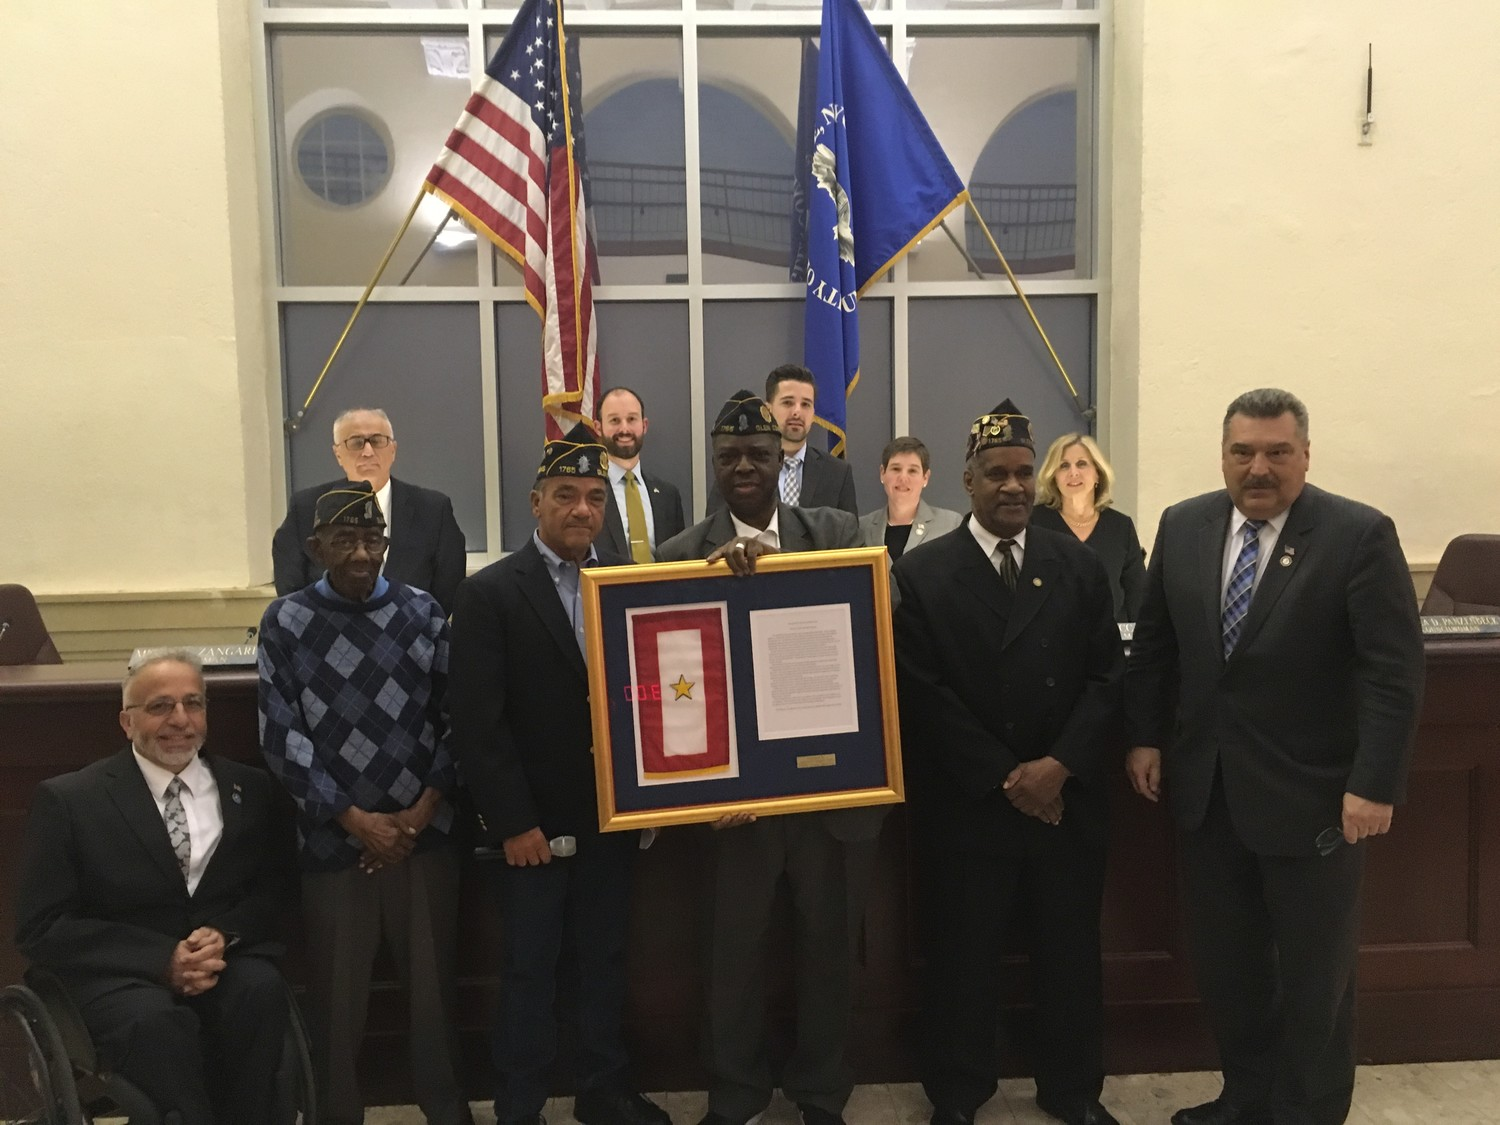 At an April 26 meeting of the city council, the Young-Simmons American Legion Post donated a Gold Star flag to the city, to be hung in City Hall.